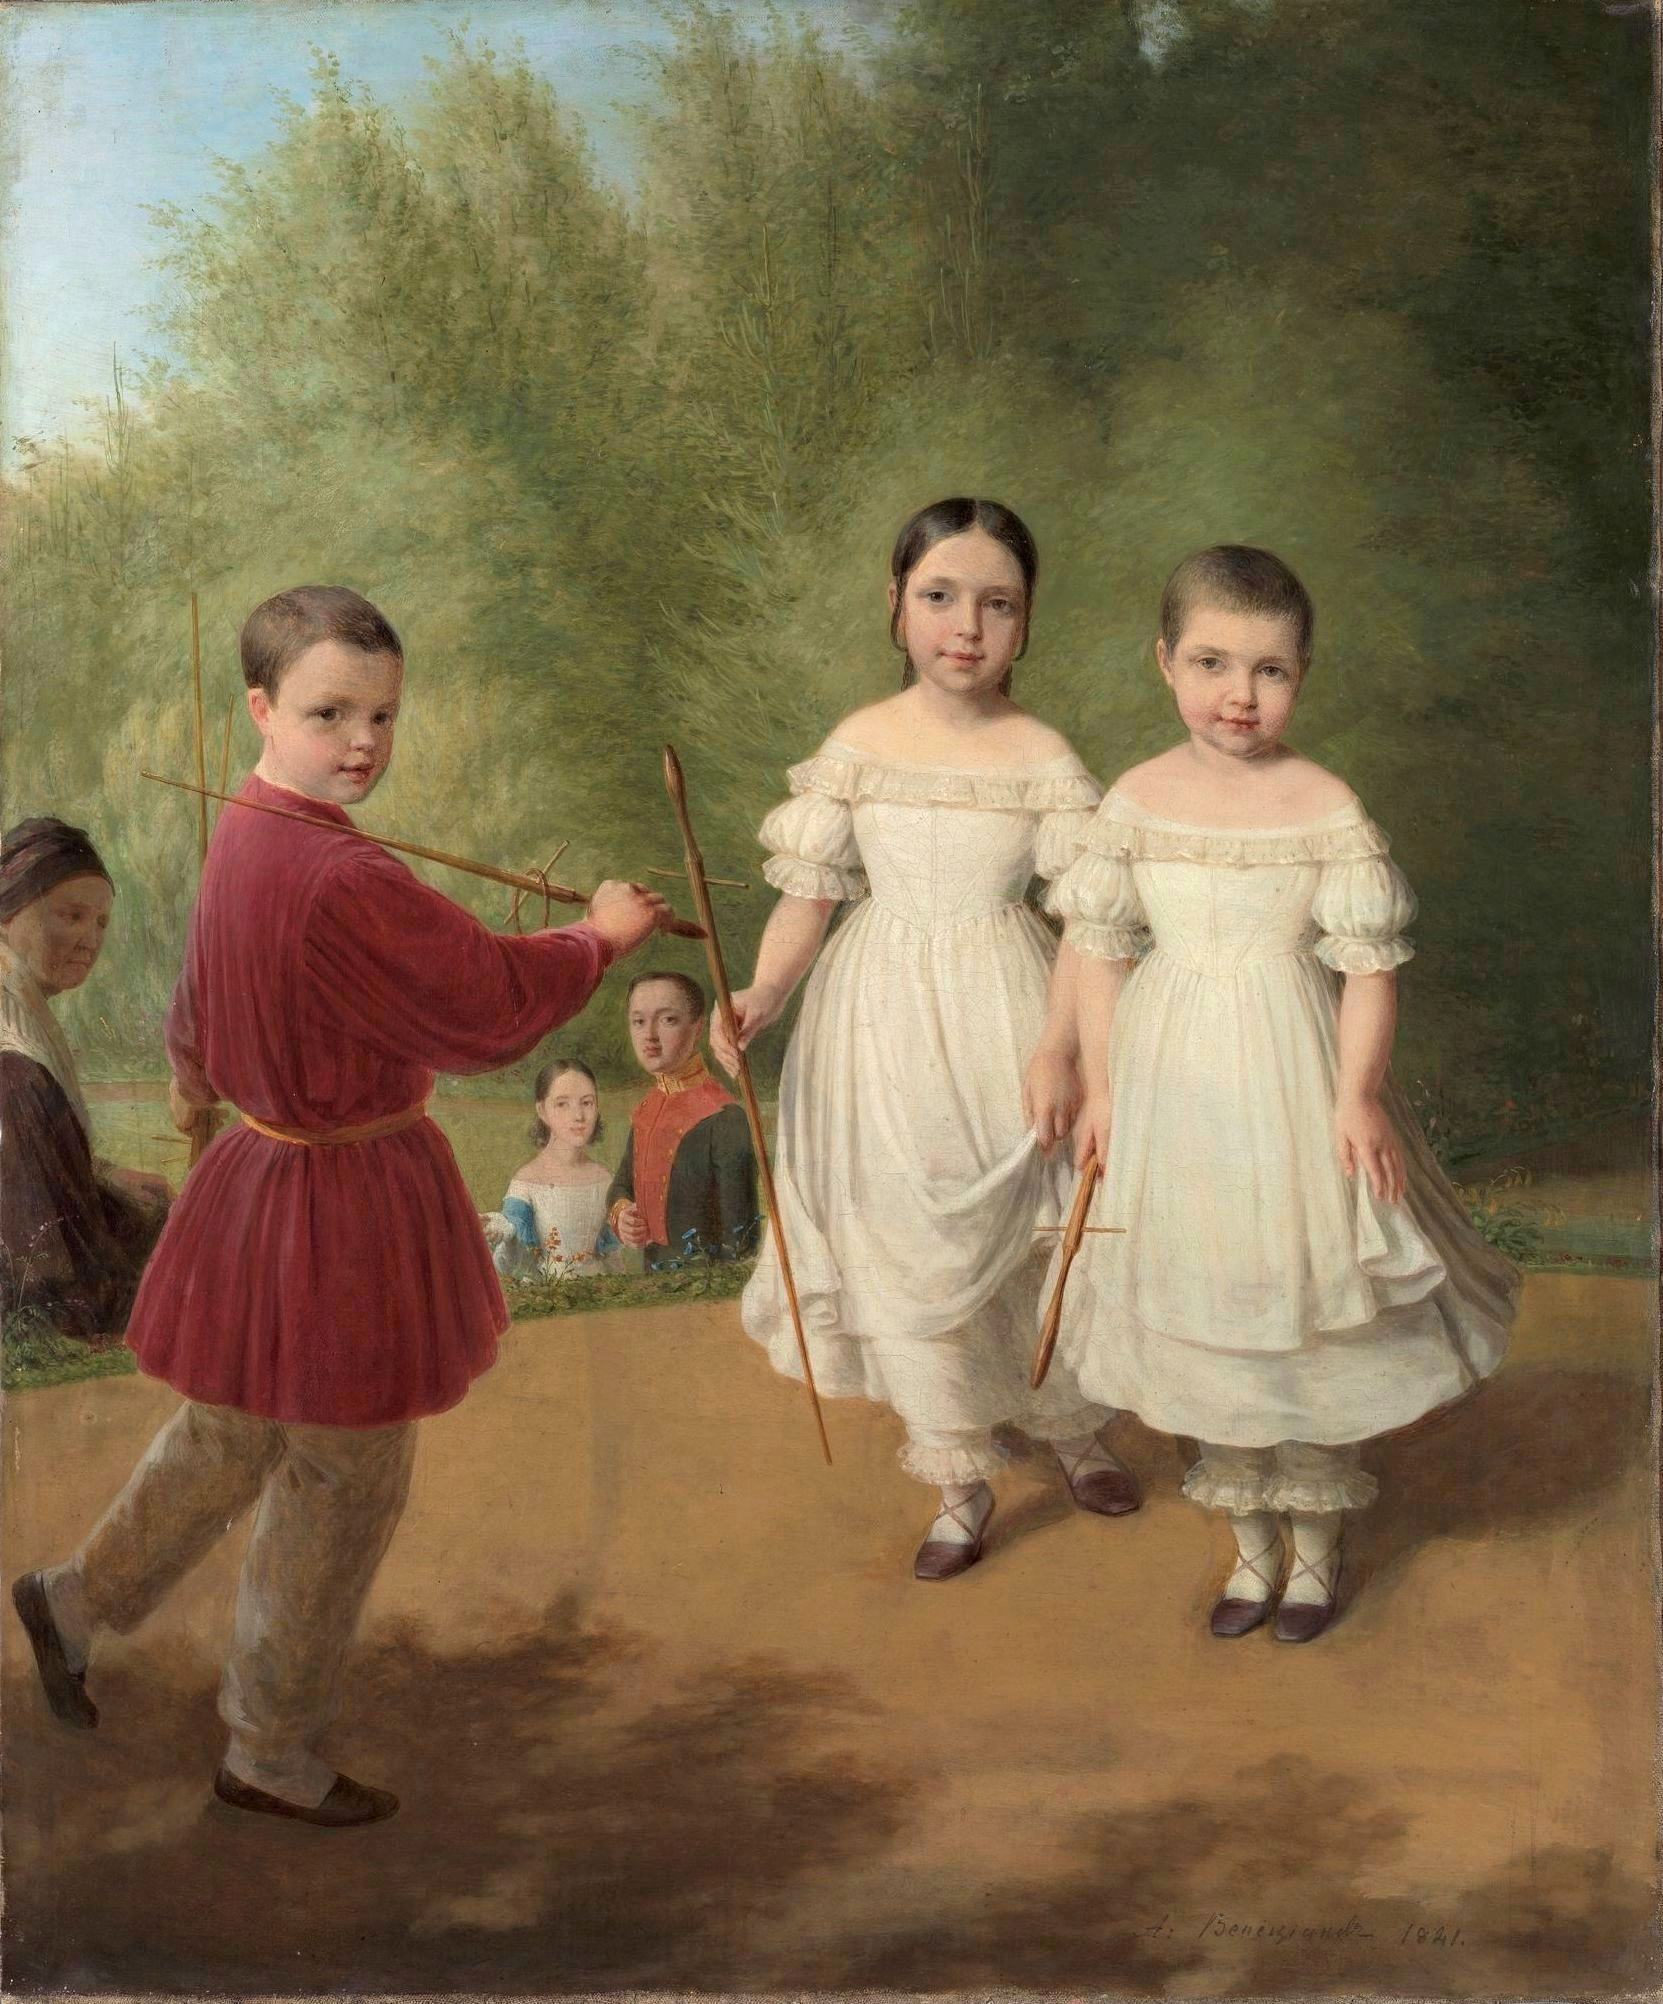 https://upload.wikimedia.org/wikipedia/commons/1/1c/Panaevs_children_by_Venetsianov.jpg